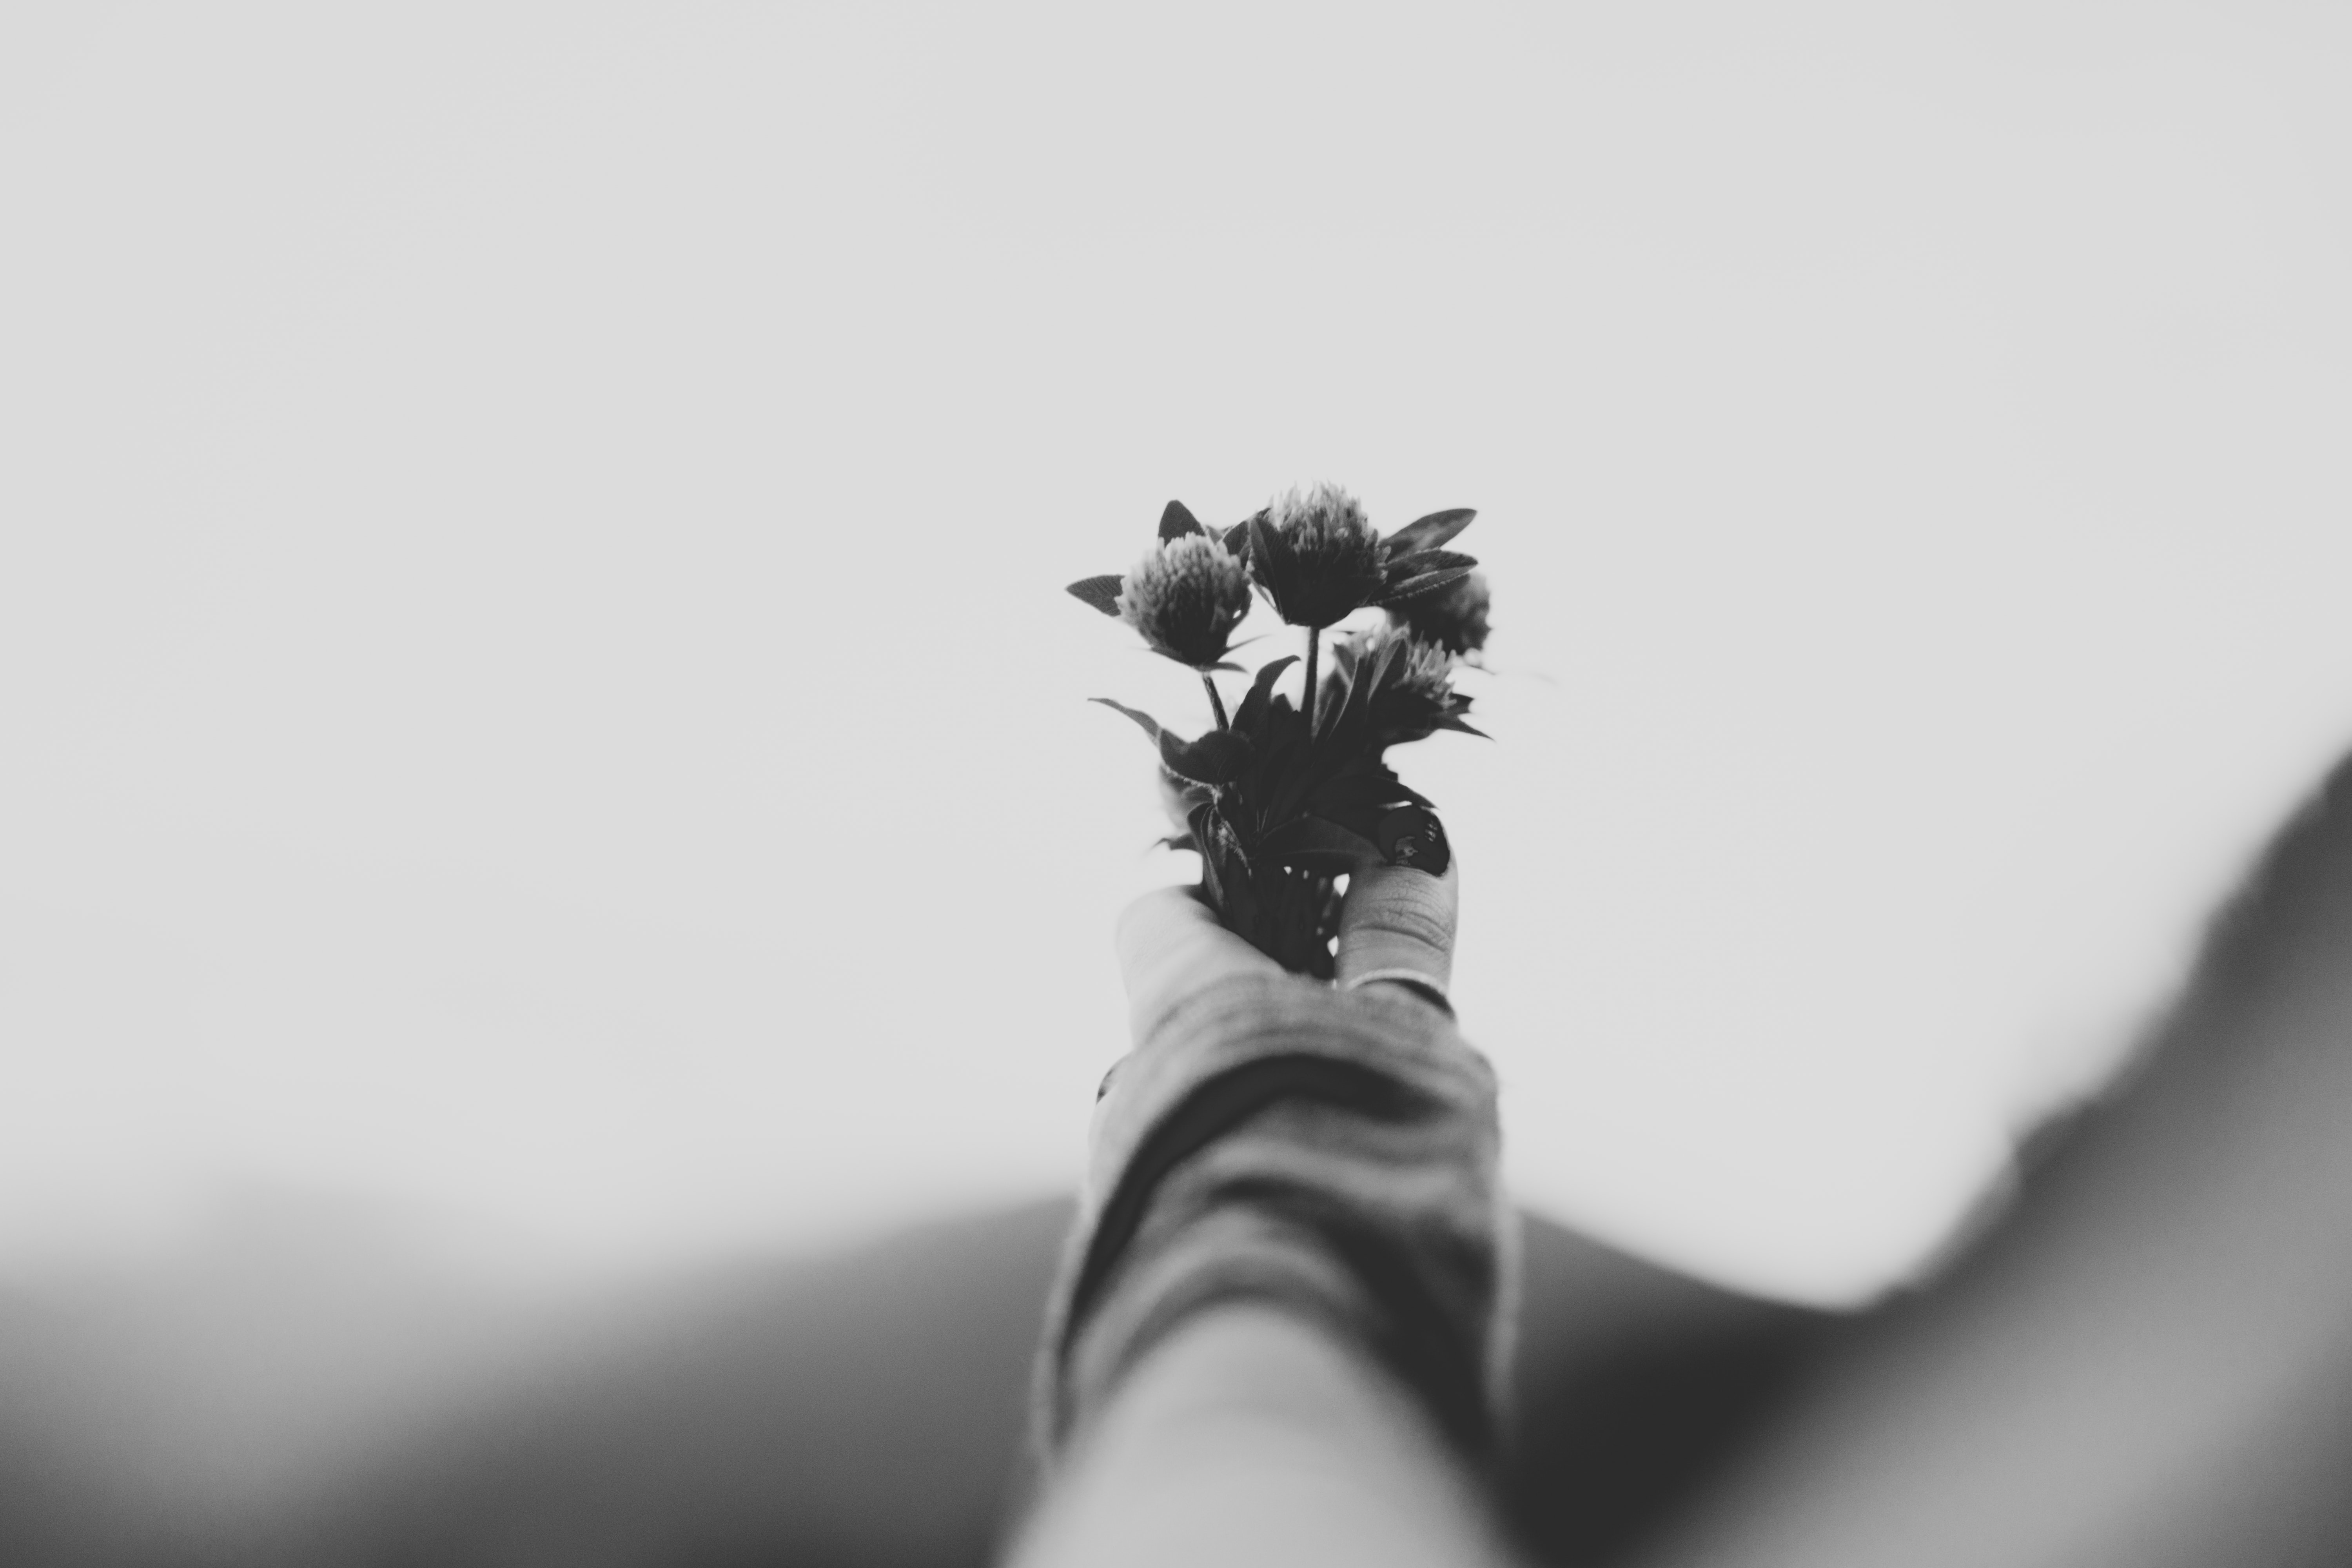 A black-and-white shot of a person's extended hand holding a small floral bouquet